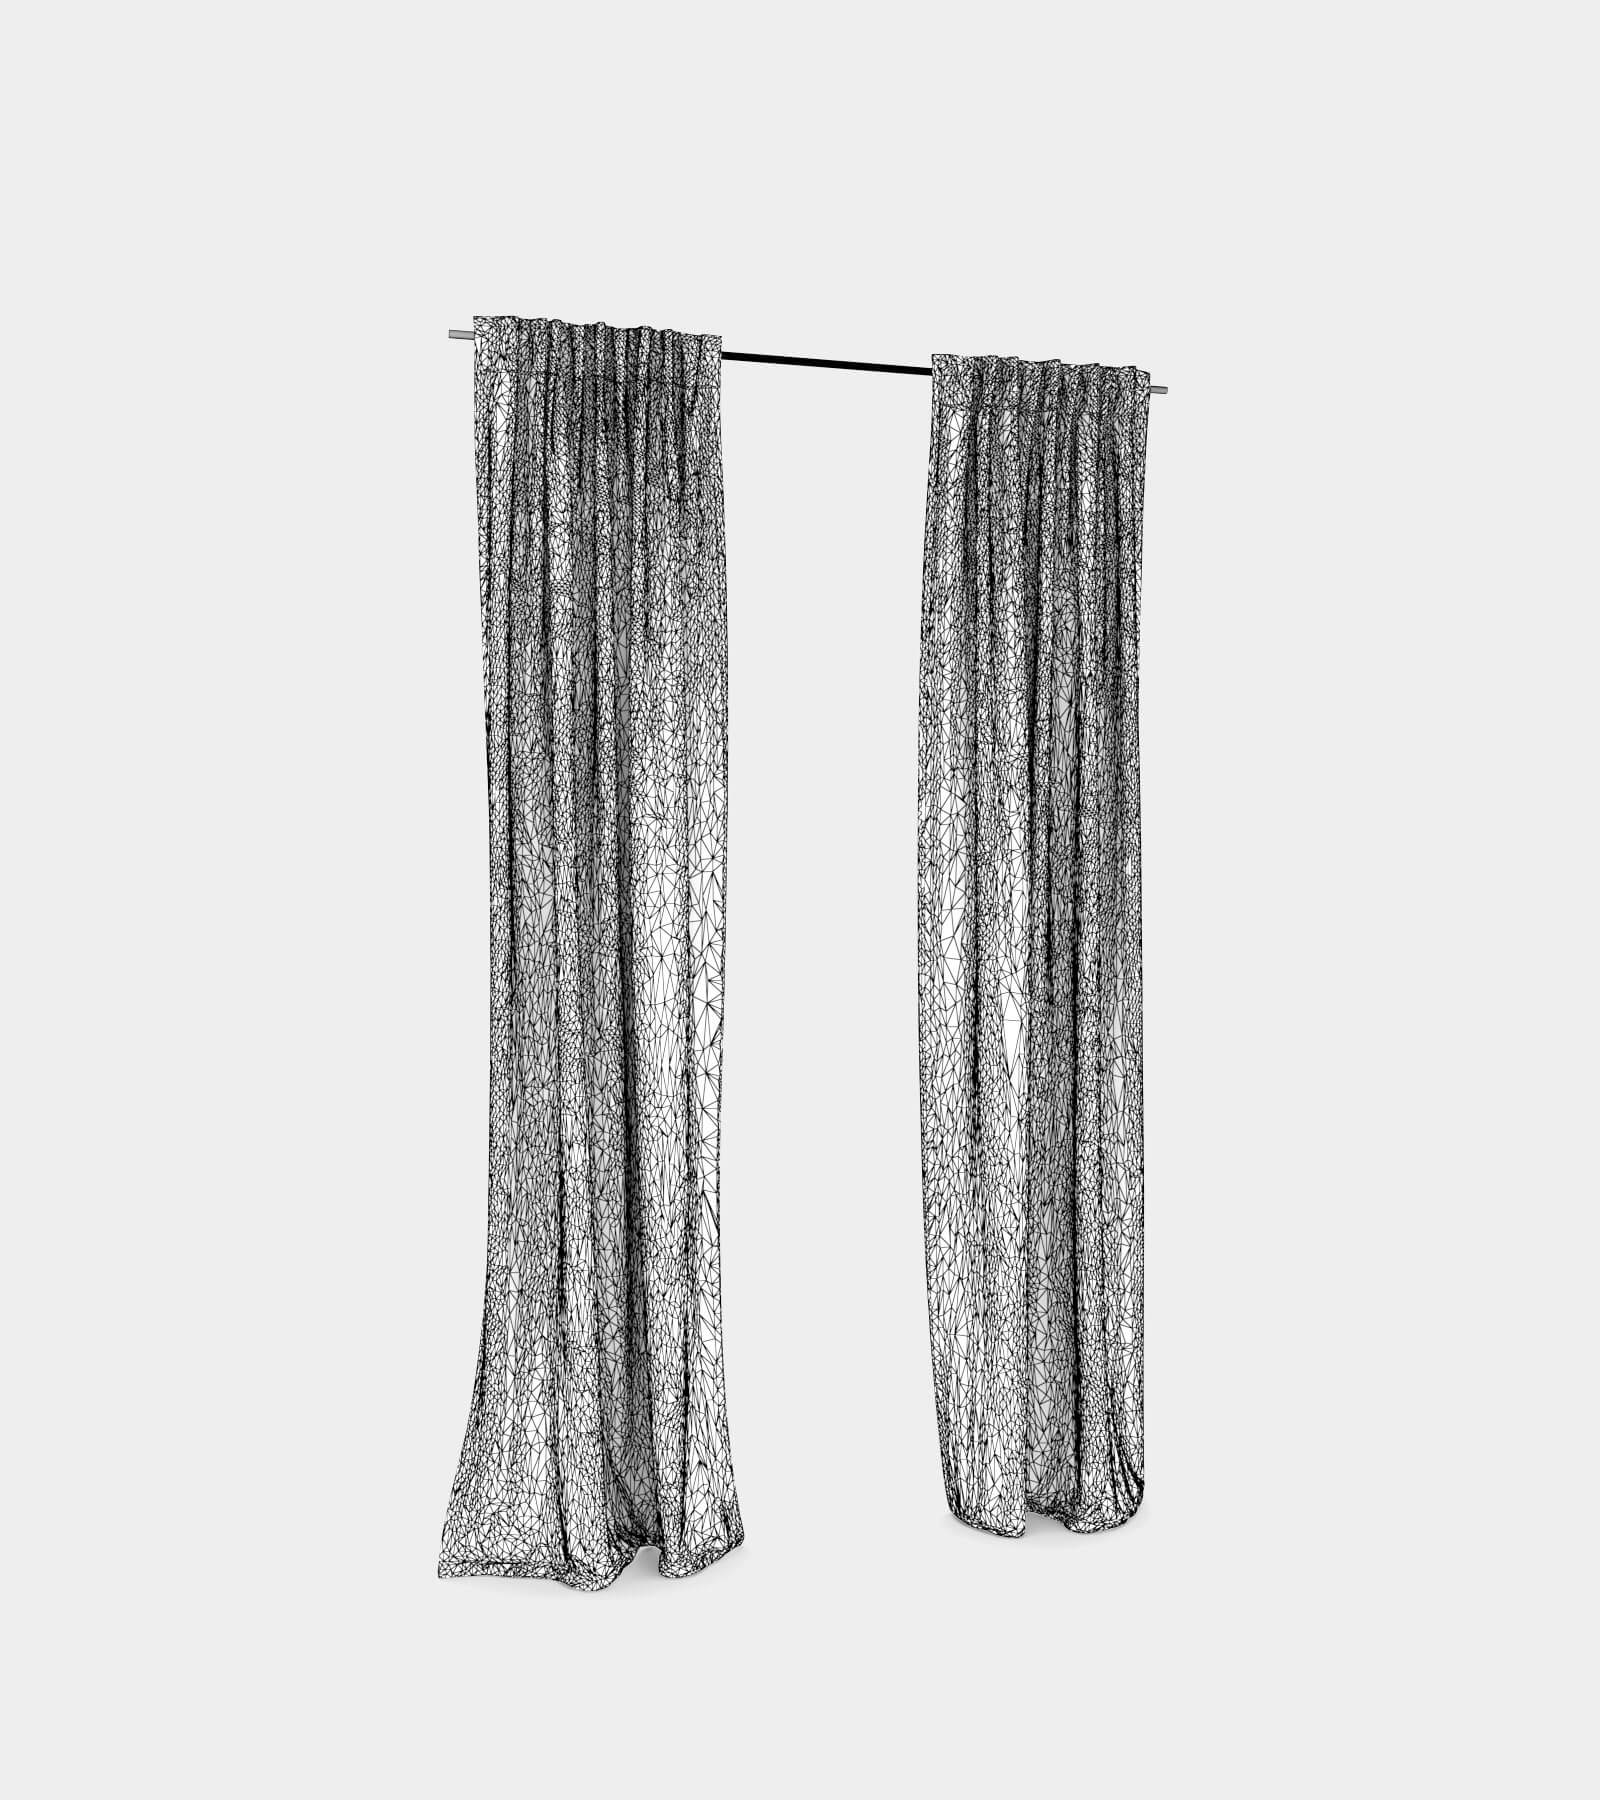 Curtain with hooks-wire-1 3D Model